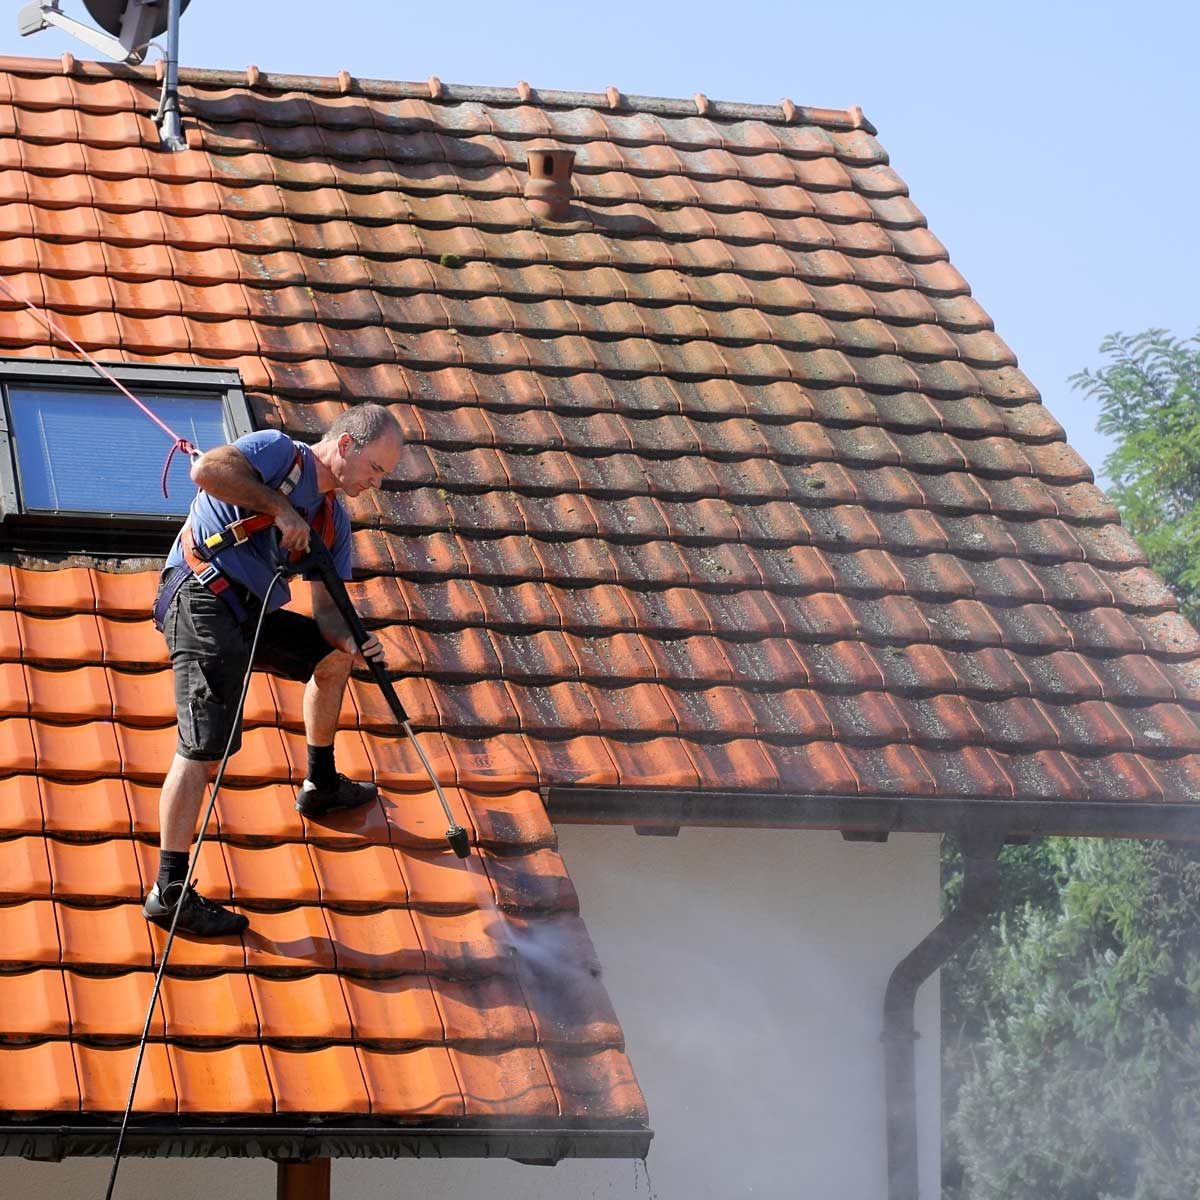 Man-pressure-washes-roof